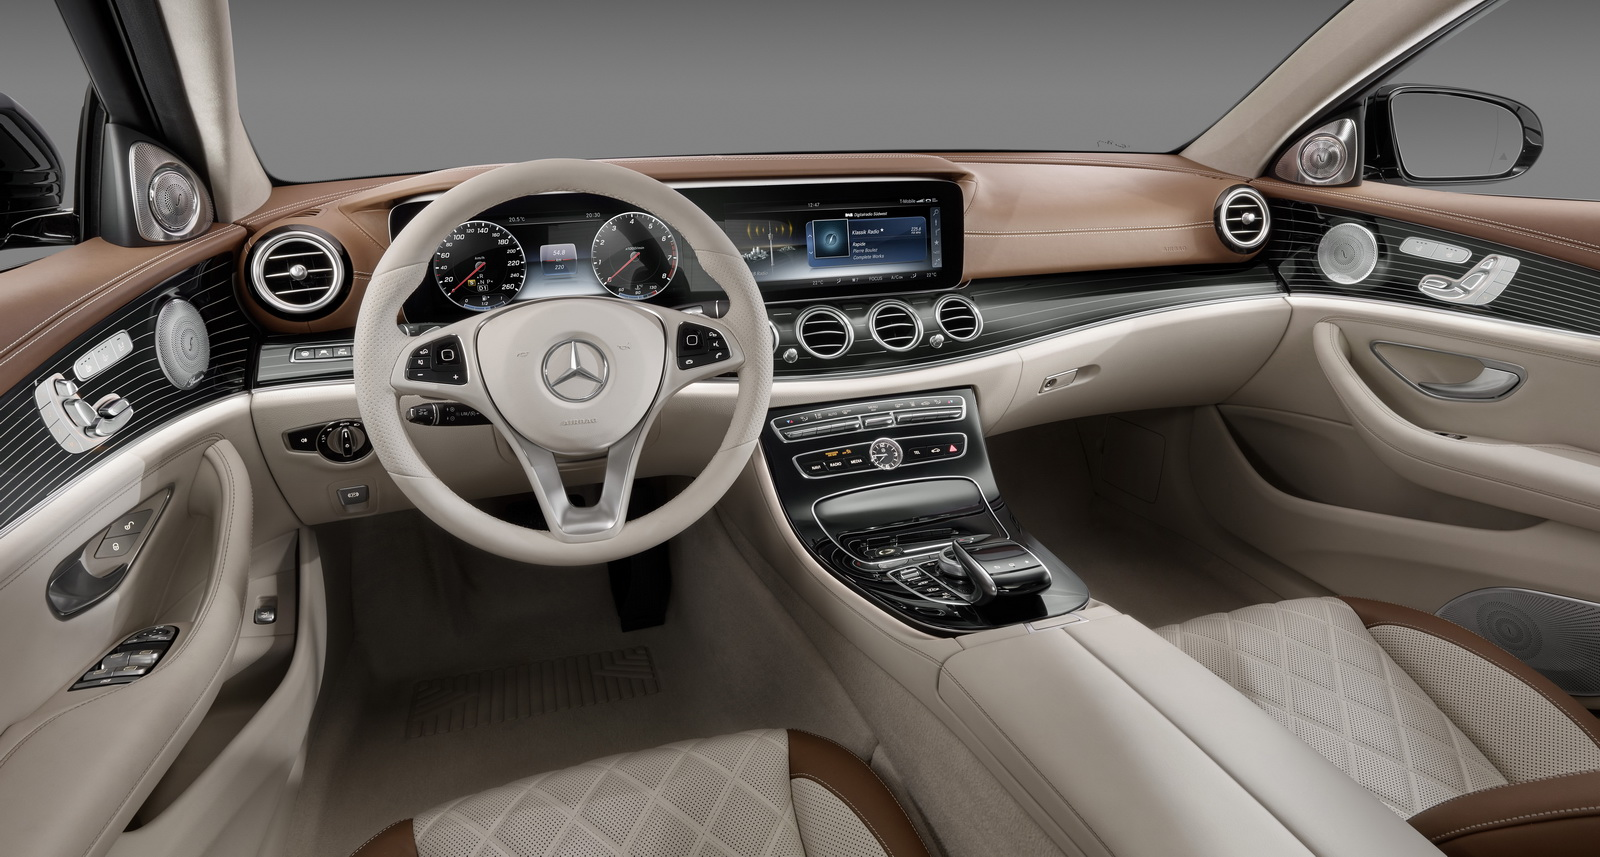 2017 Mercedes Benz E Cl Dashboard Shown At Ces